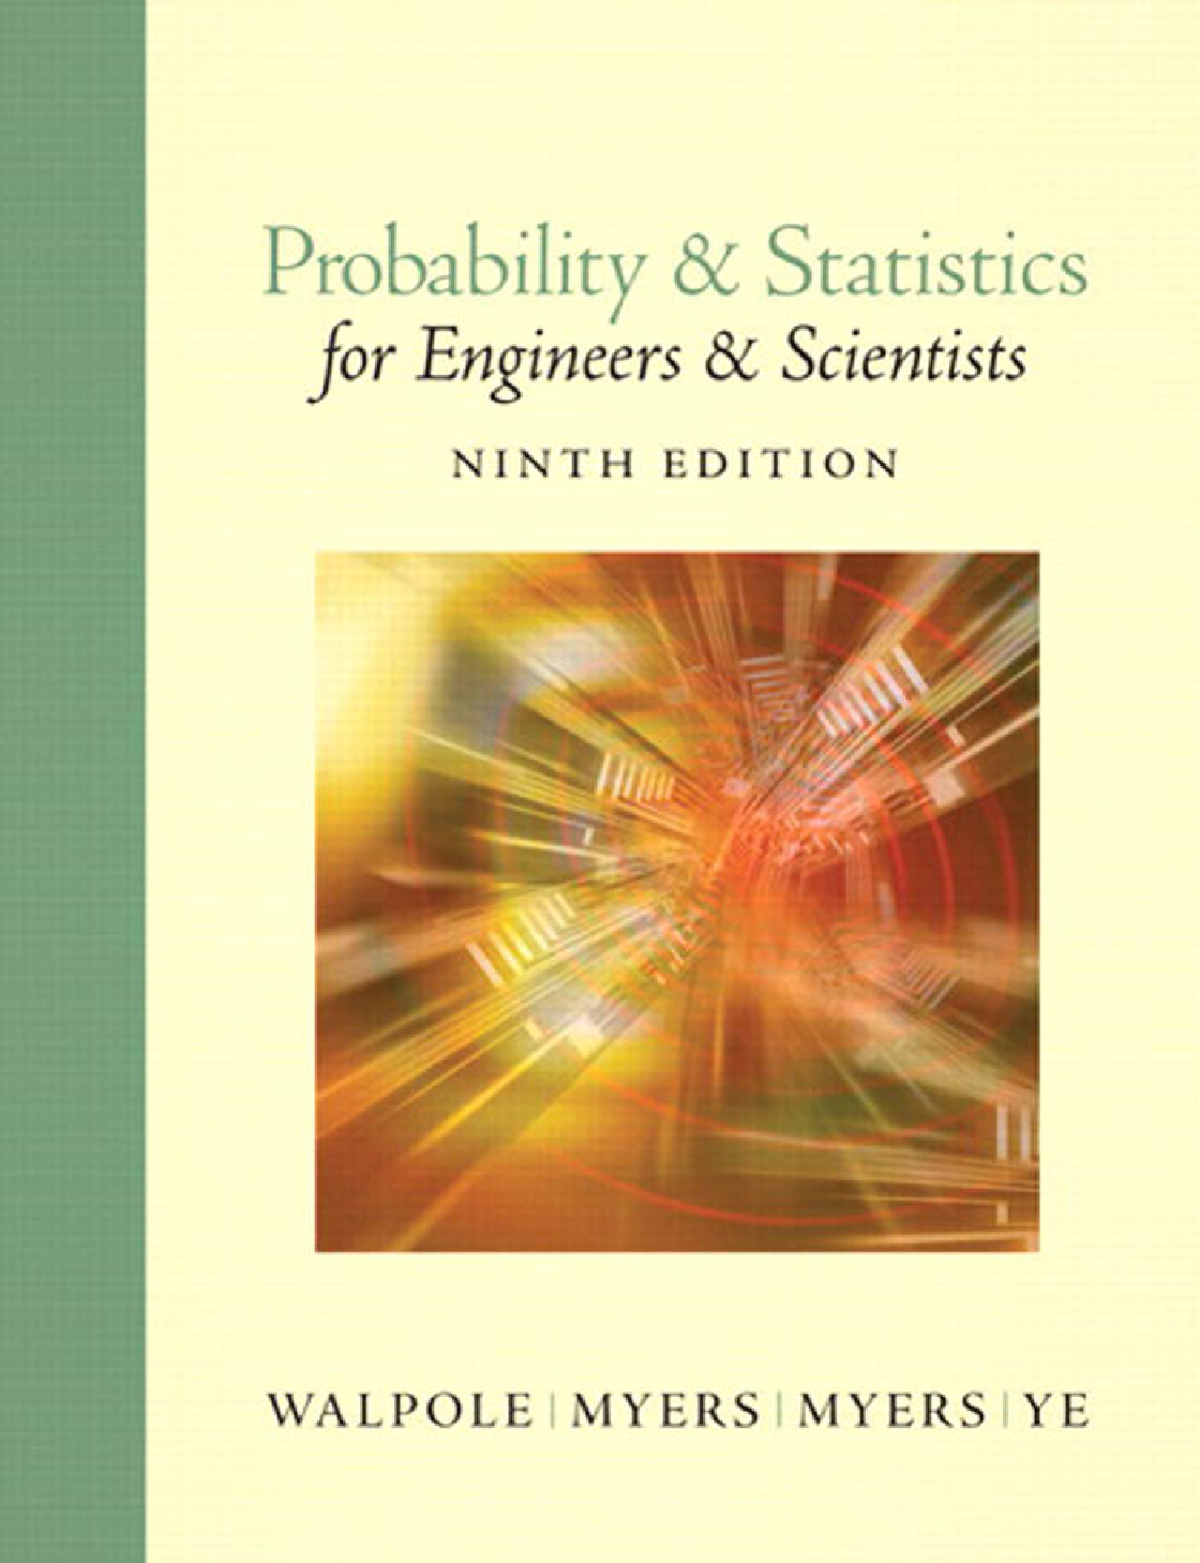 Probability & Statistics for Engineers & Scientists (9th Edition